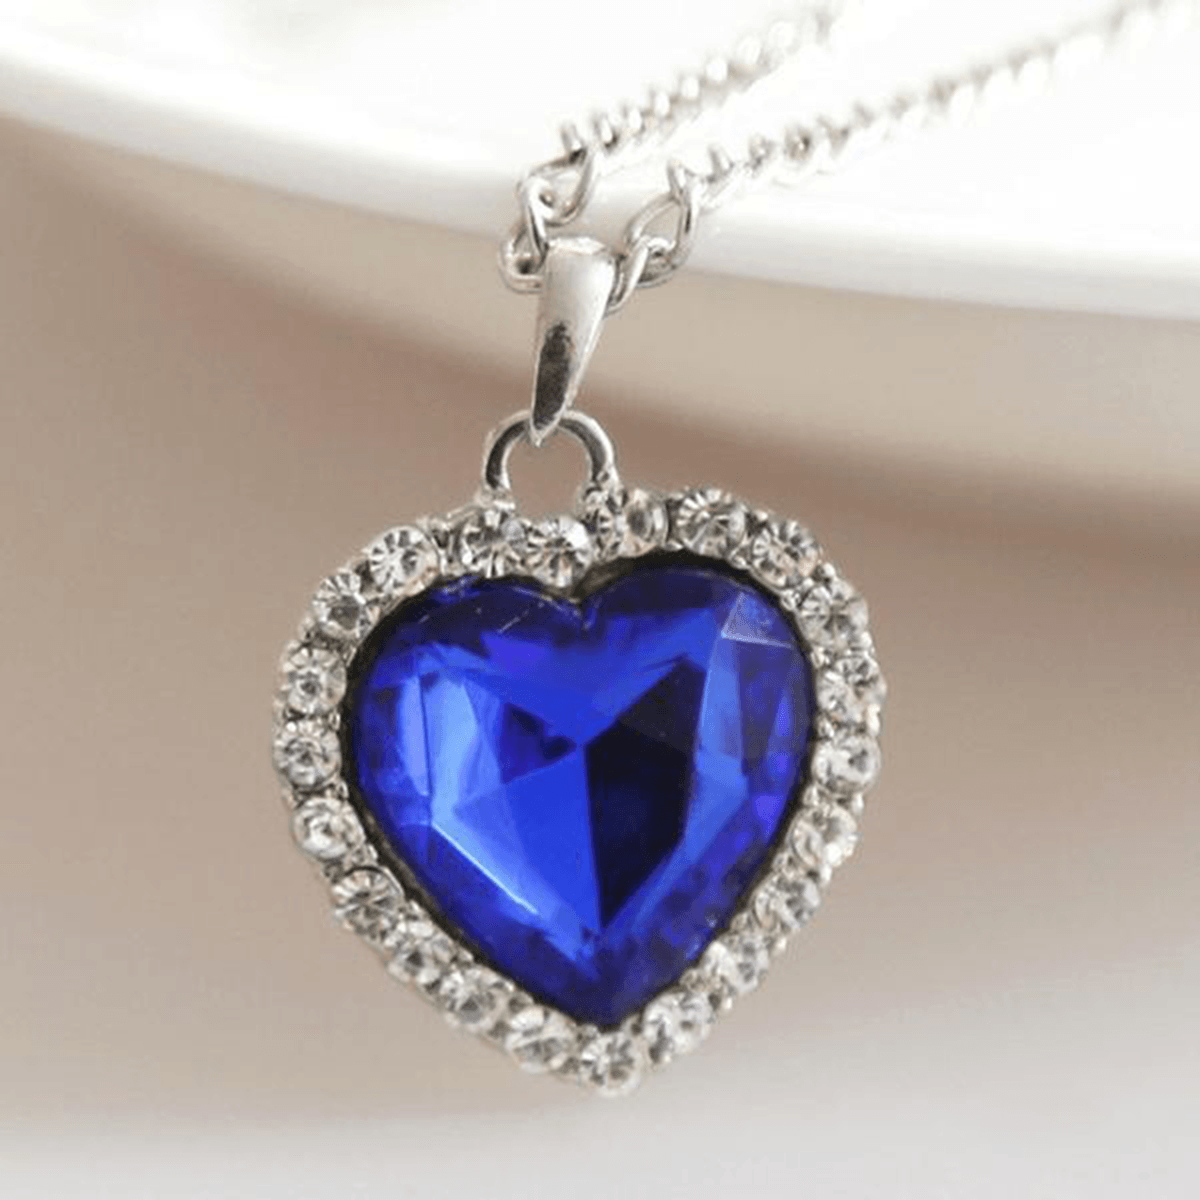 Free heart of the ocean crystal pendant necklace etify free heart of the ocean crystal pendant necklace aloadofball Image collections